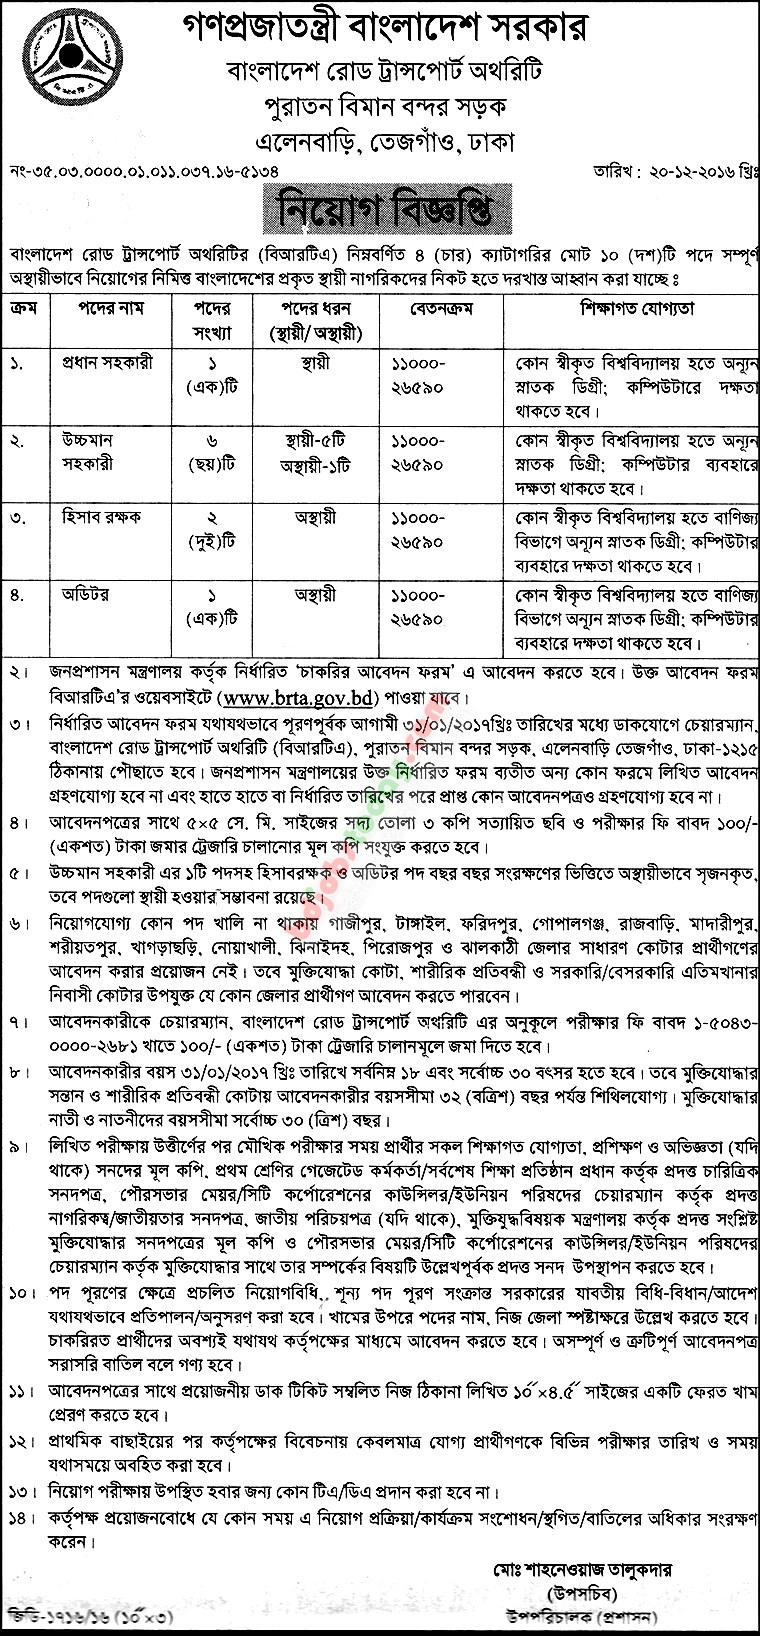 Bangladesh Road Transport Authority-BRTA jobs